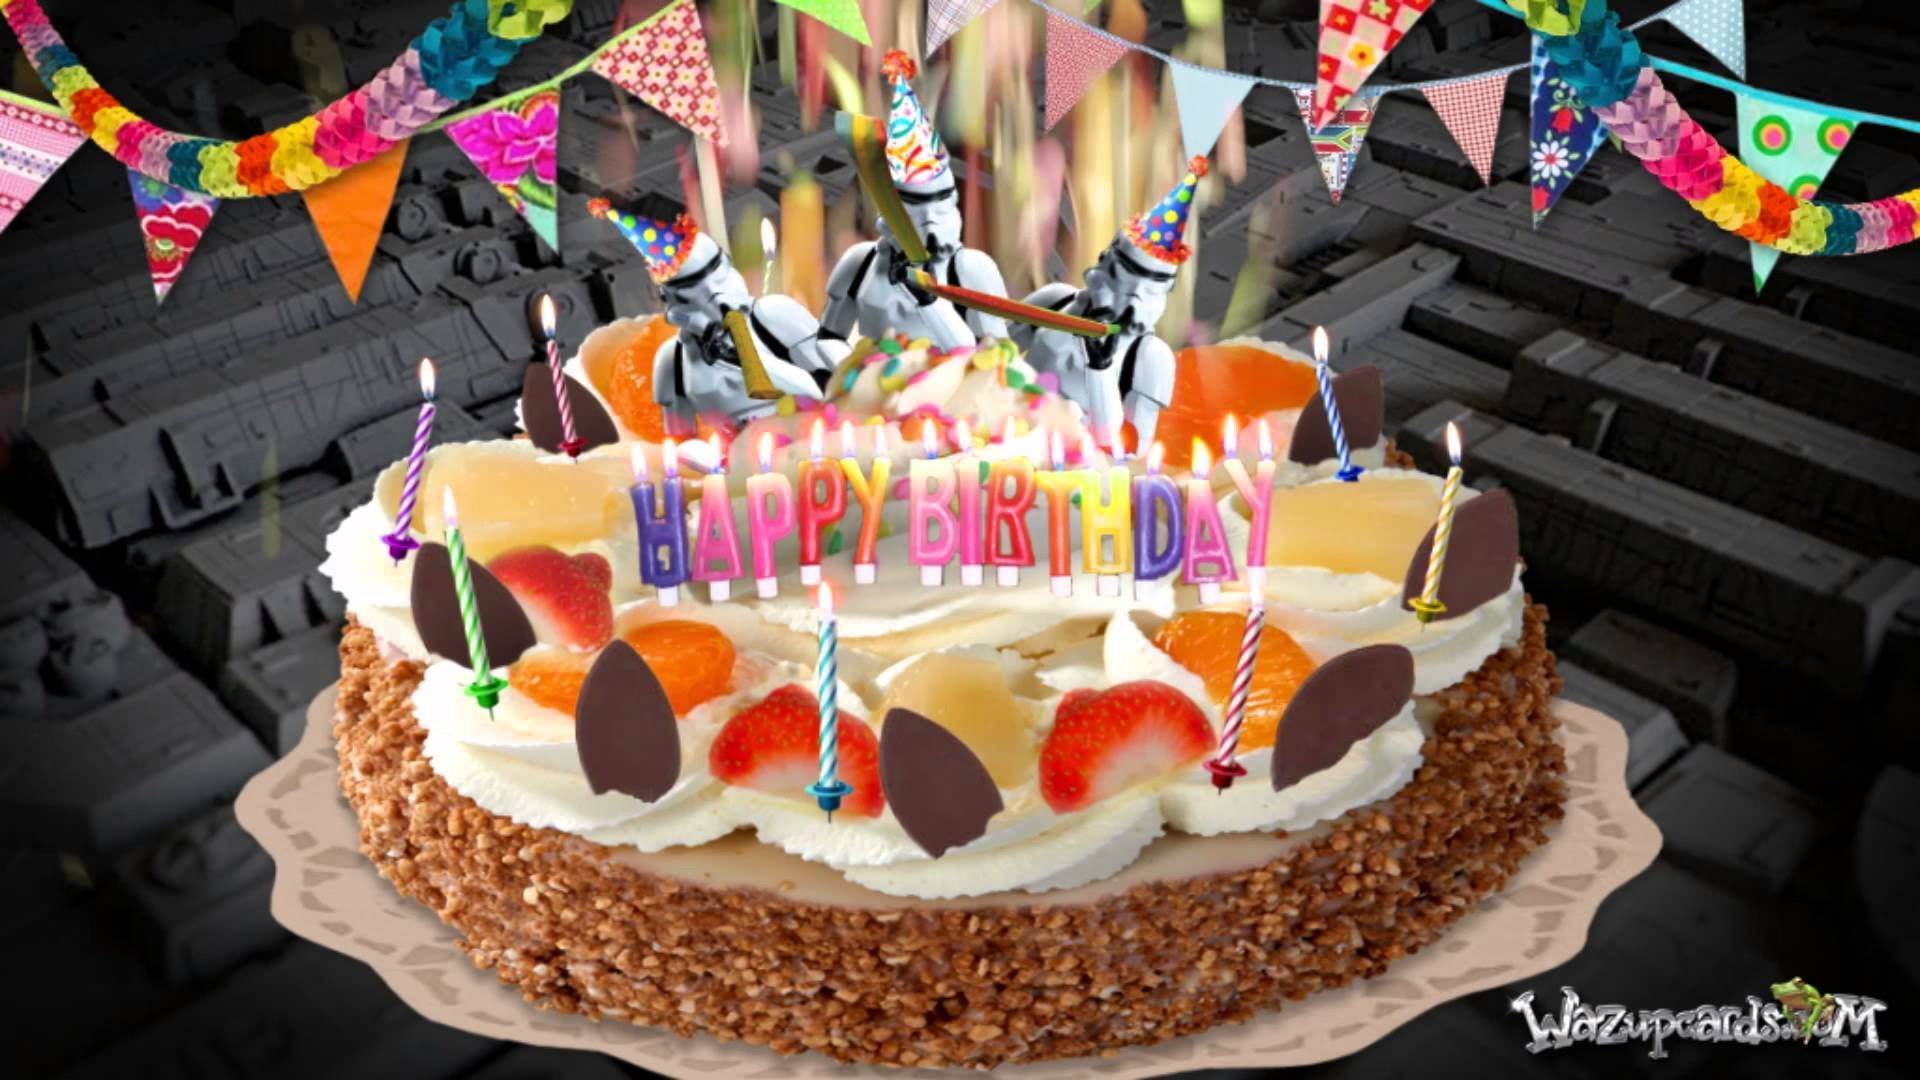 Happy Birthday Cake Immagini ~ Birthday images hd google search happy birthday cake